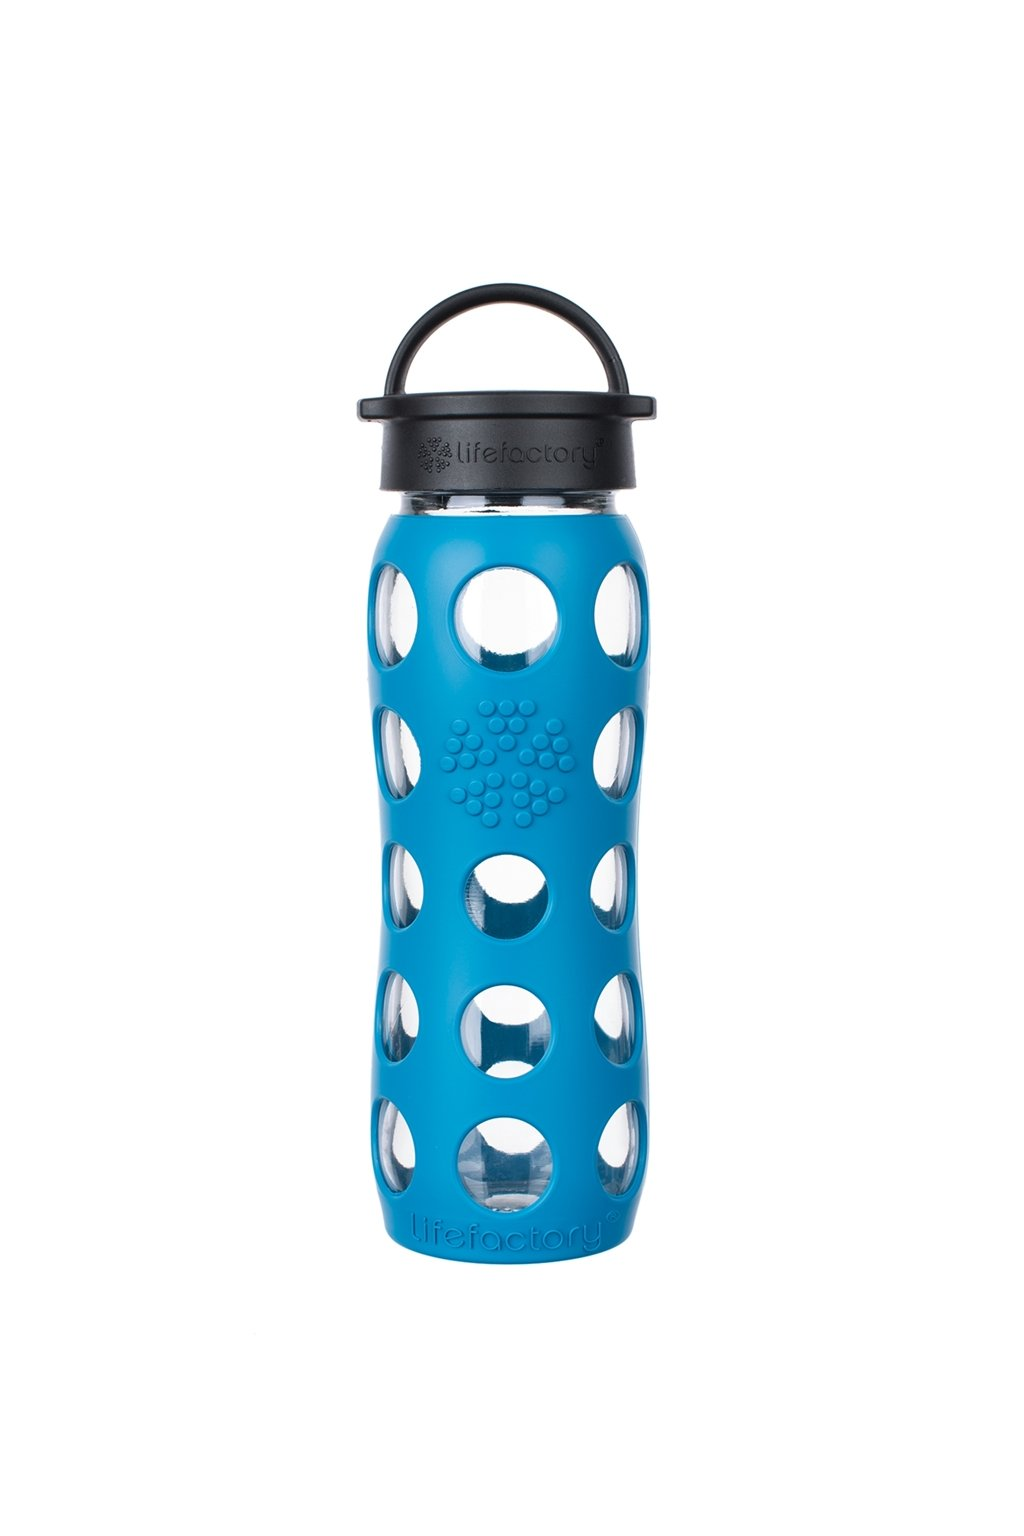 Eko flasa na vodu Lifeafctory 650 ml Teal lake